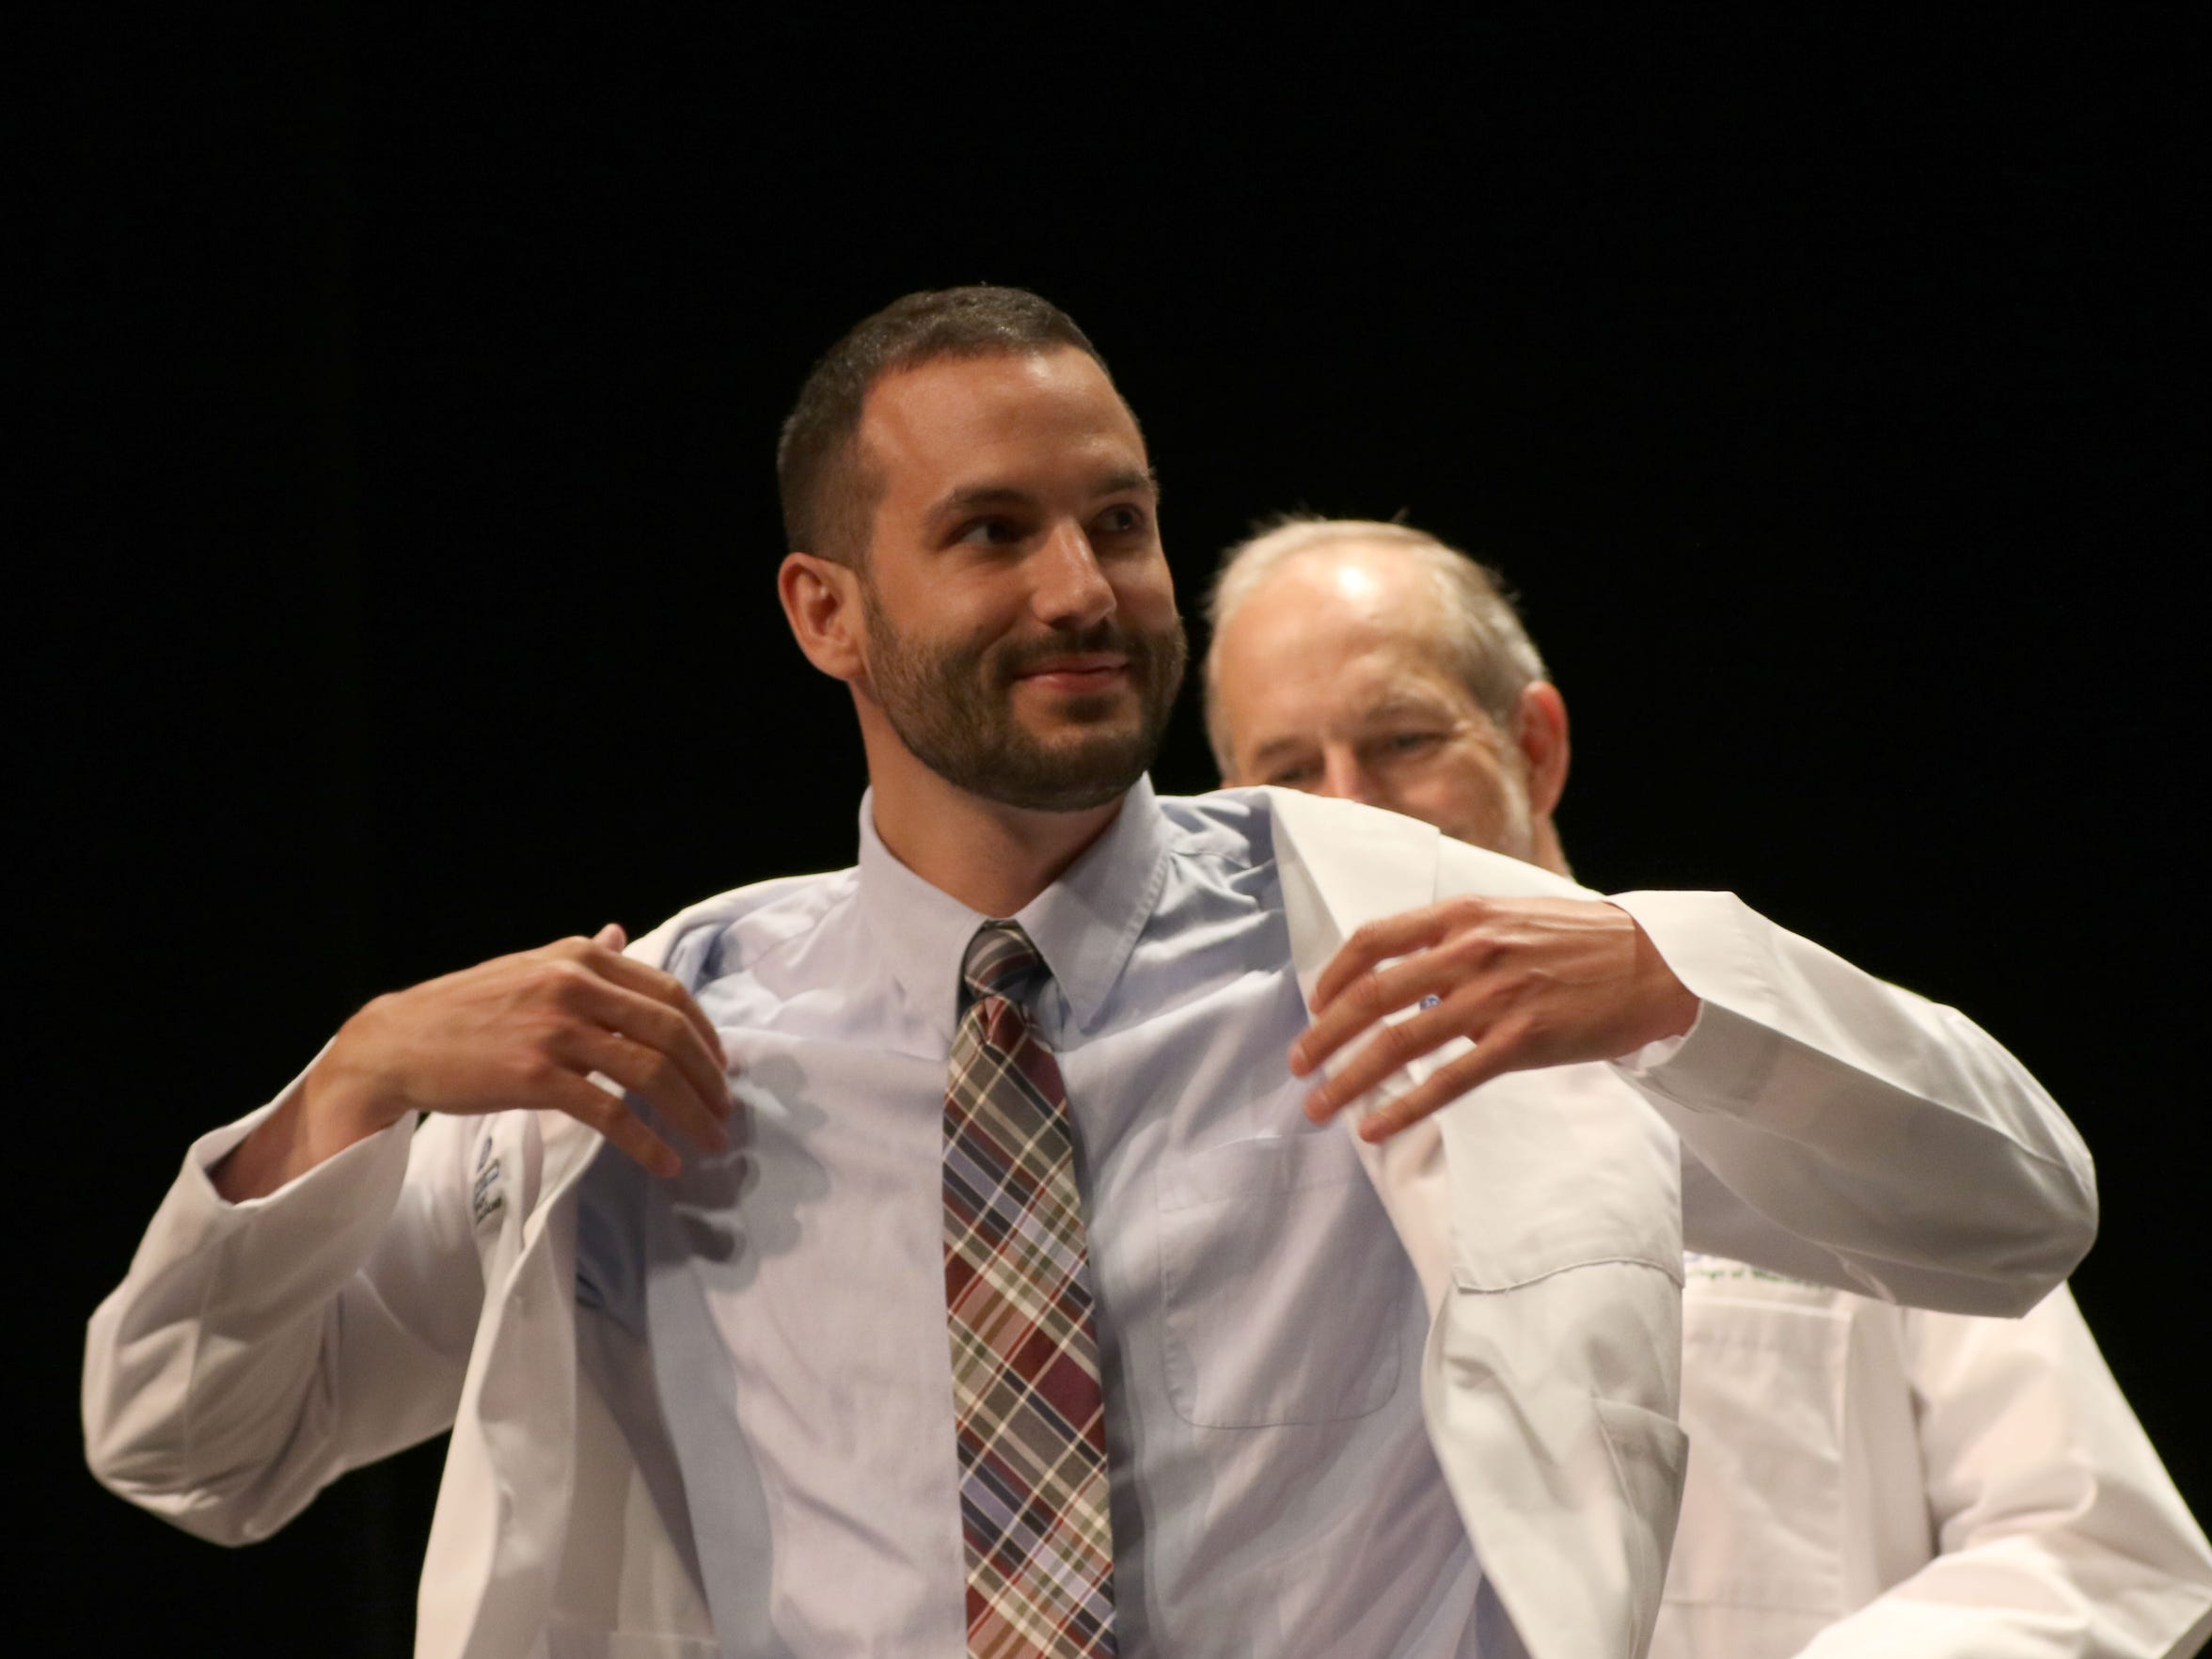 Neal Smith is coated during the Medical College of Wisconsin Central Wisconsin White Coat Ceremony at UW Marathon County, in Wausau, Wisconsin, July 7, 2016.